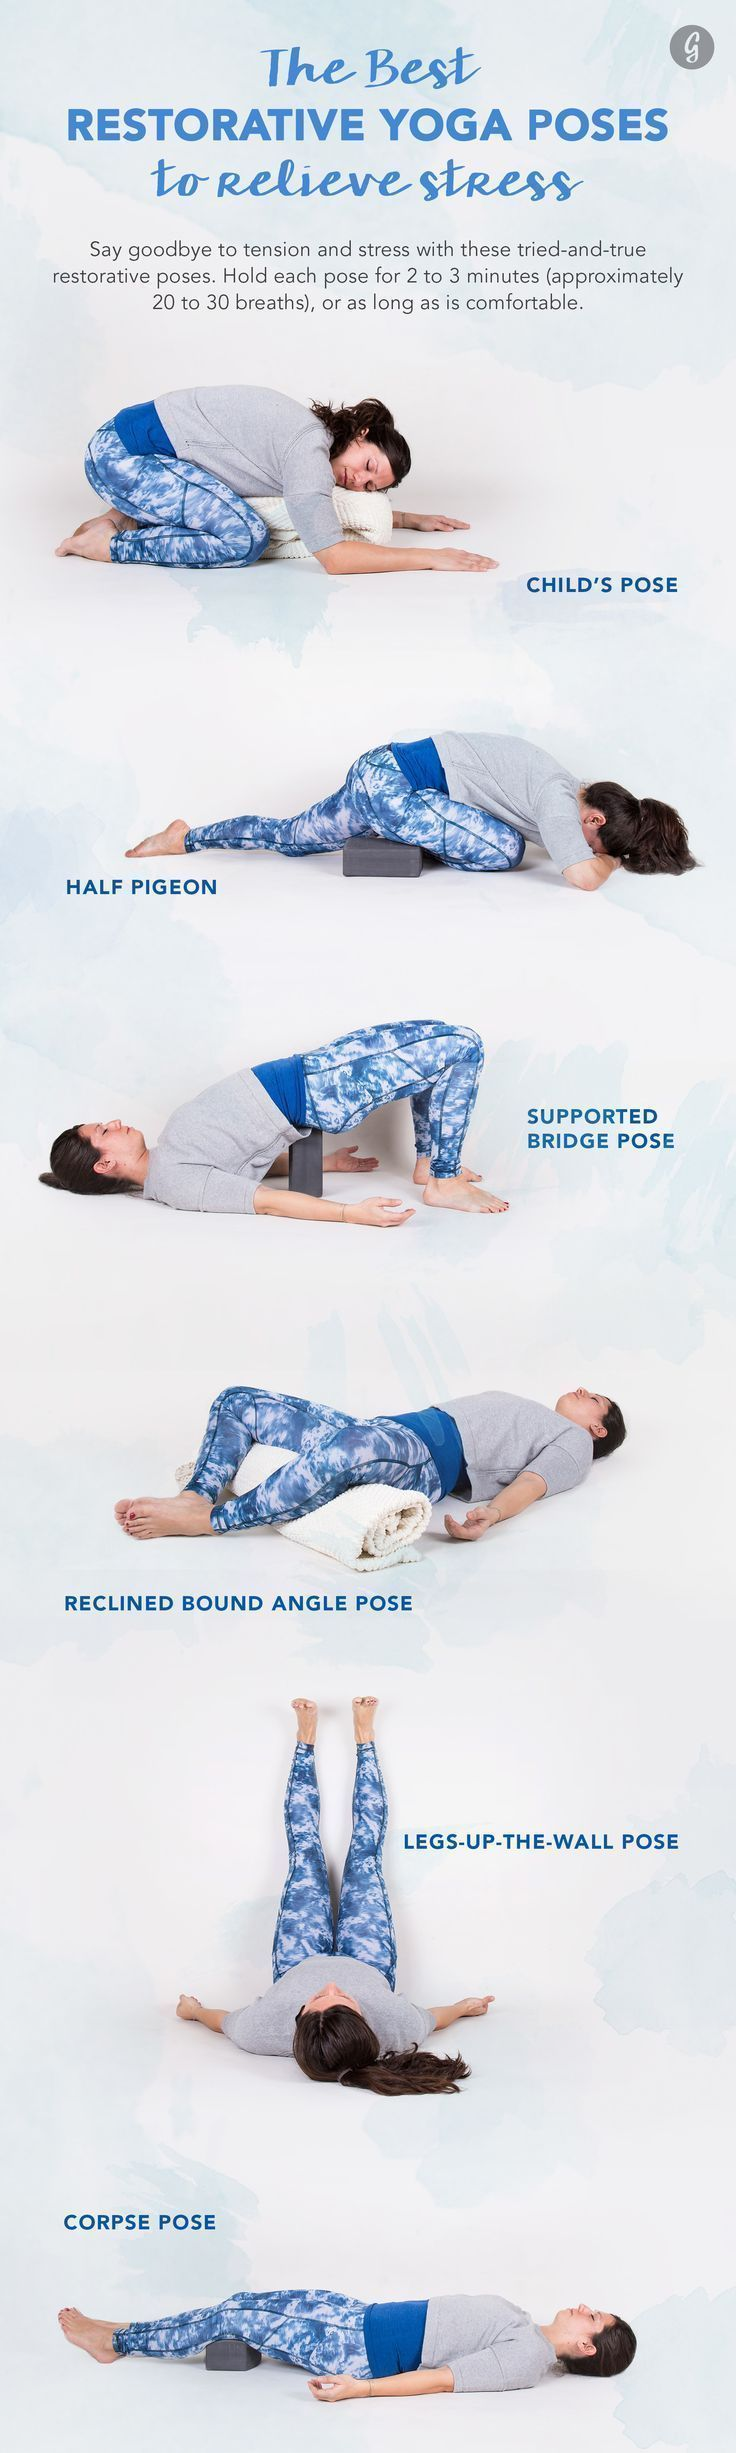 Restore your mind and body with these Yoga Poses.